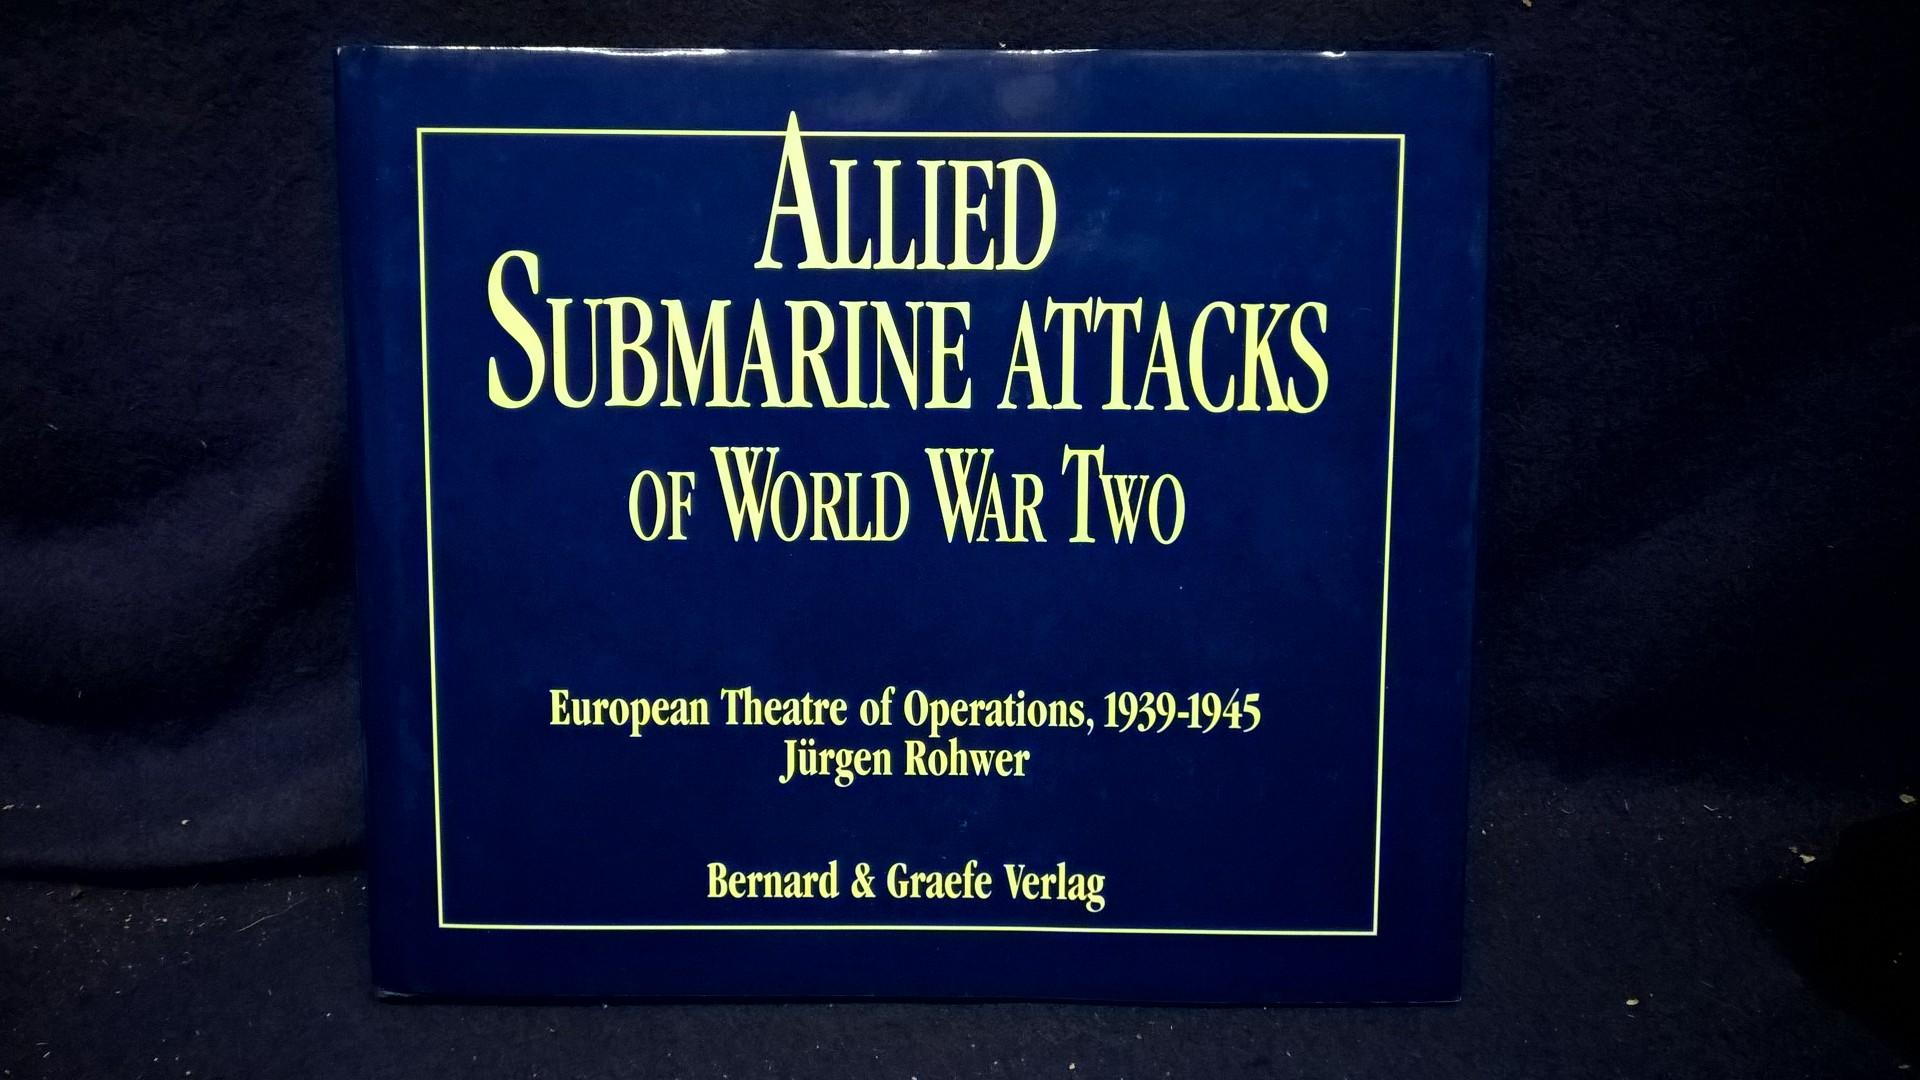 Allied Submarine Attacks of World War Two. European Theatre of Operations, 1939-1945.